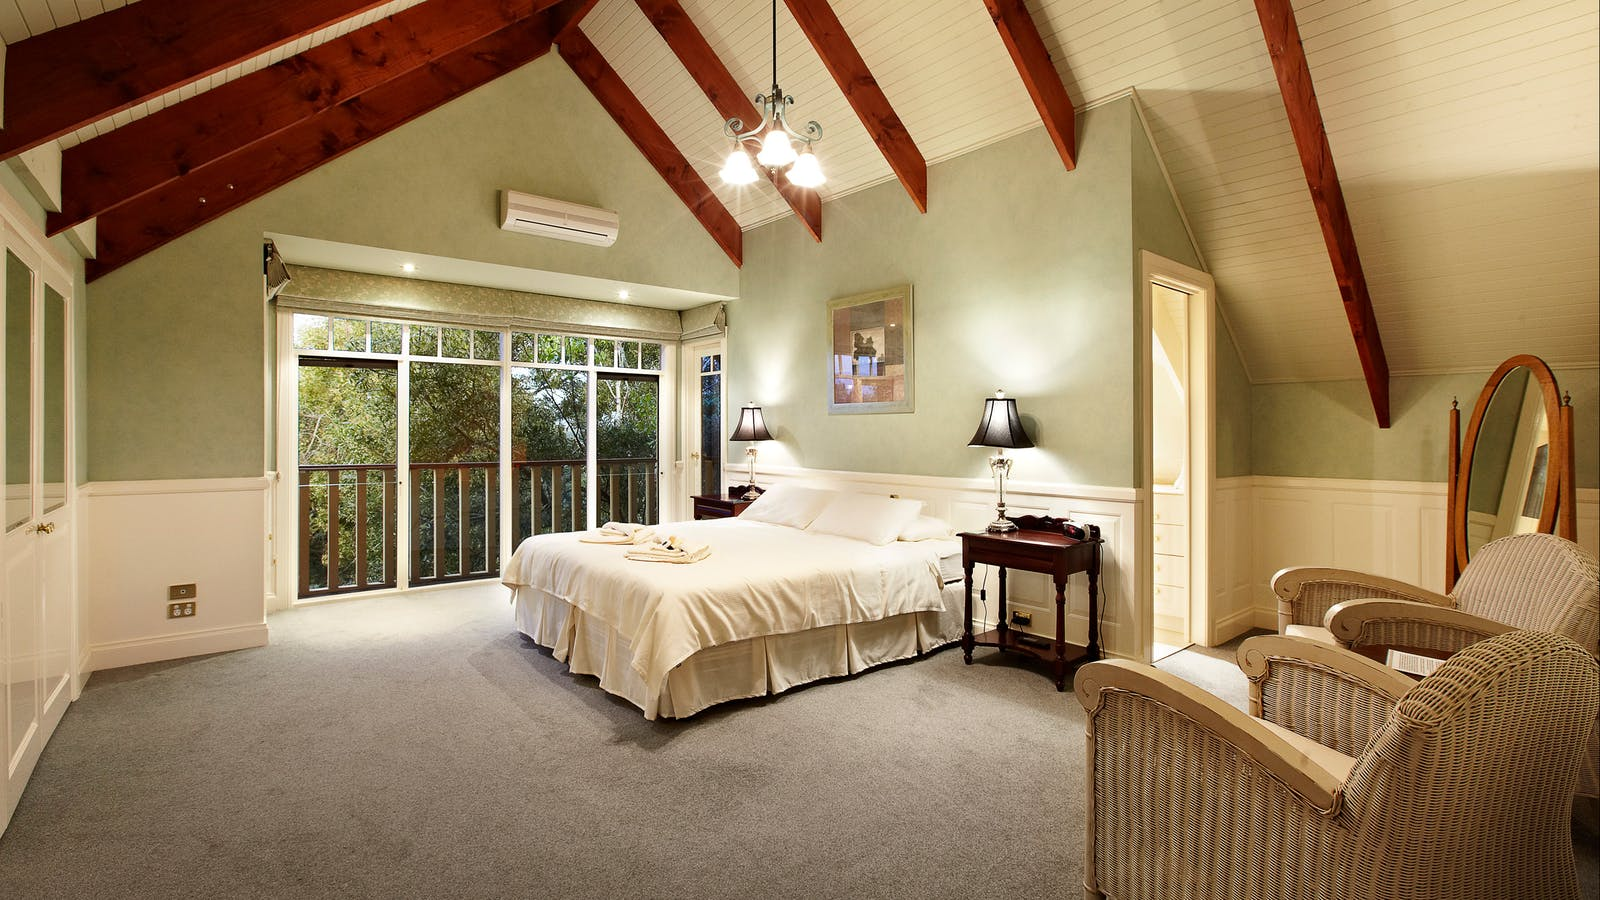 Room 7, king size bed with ensuite